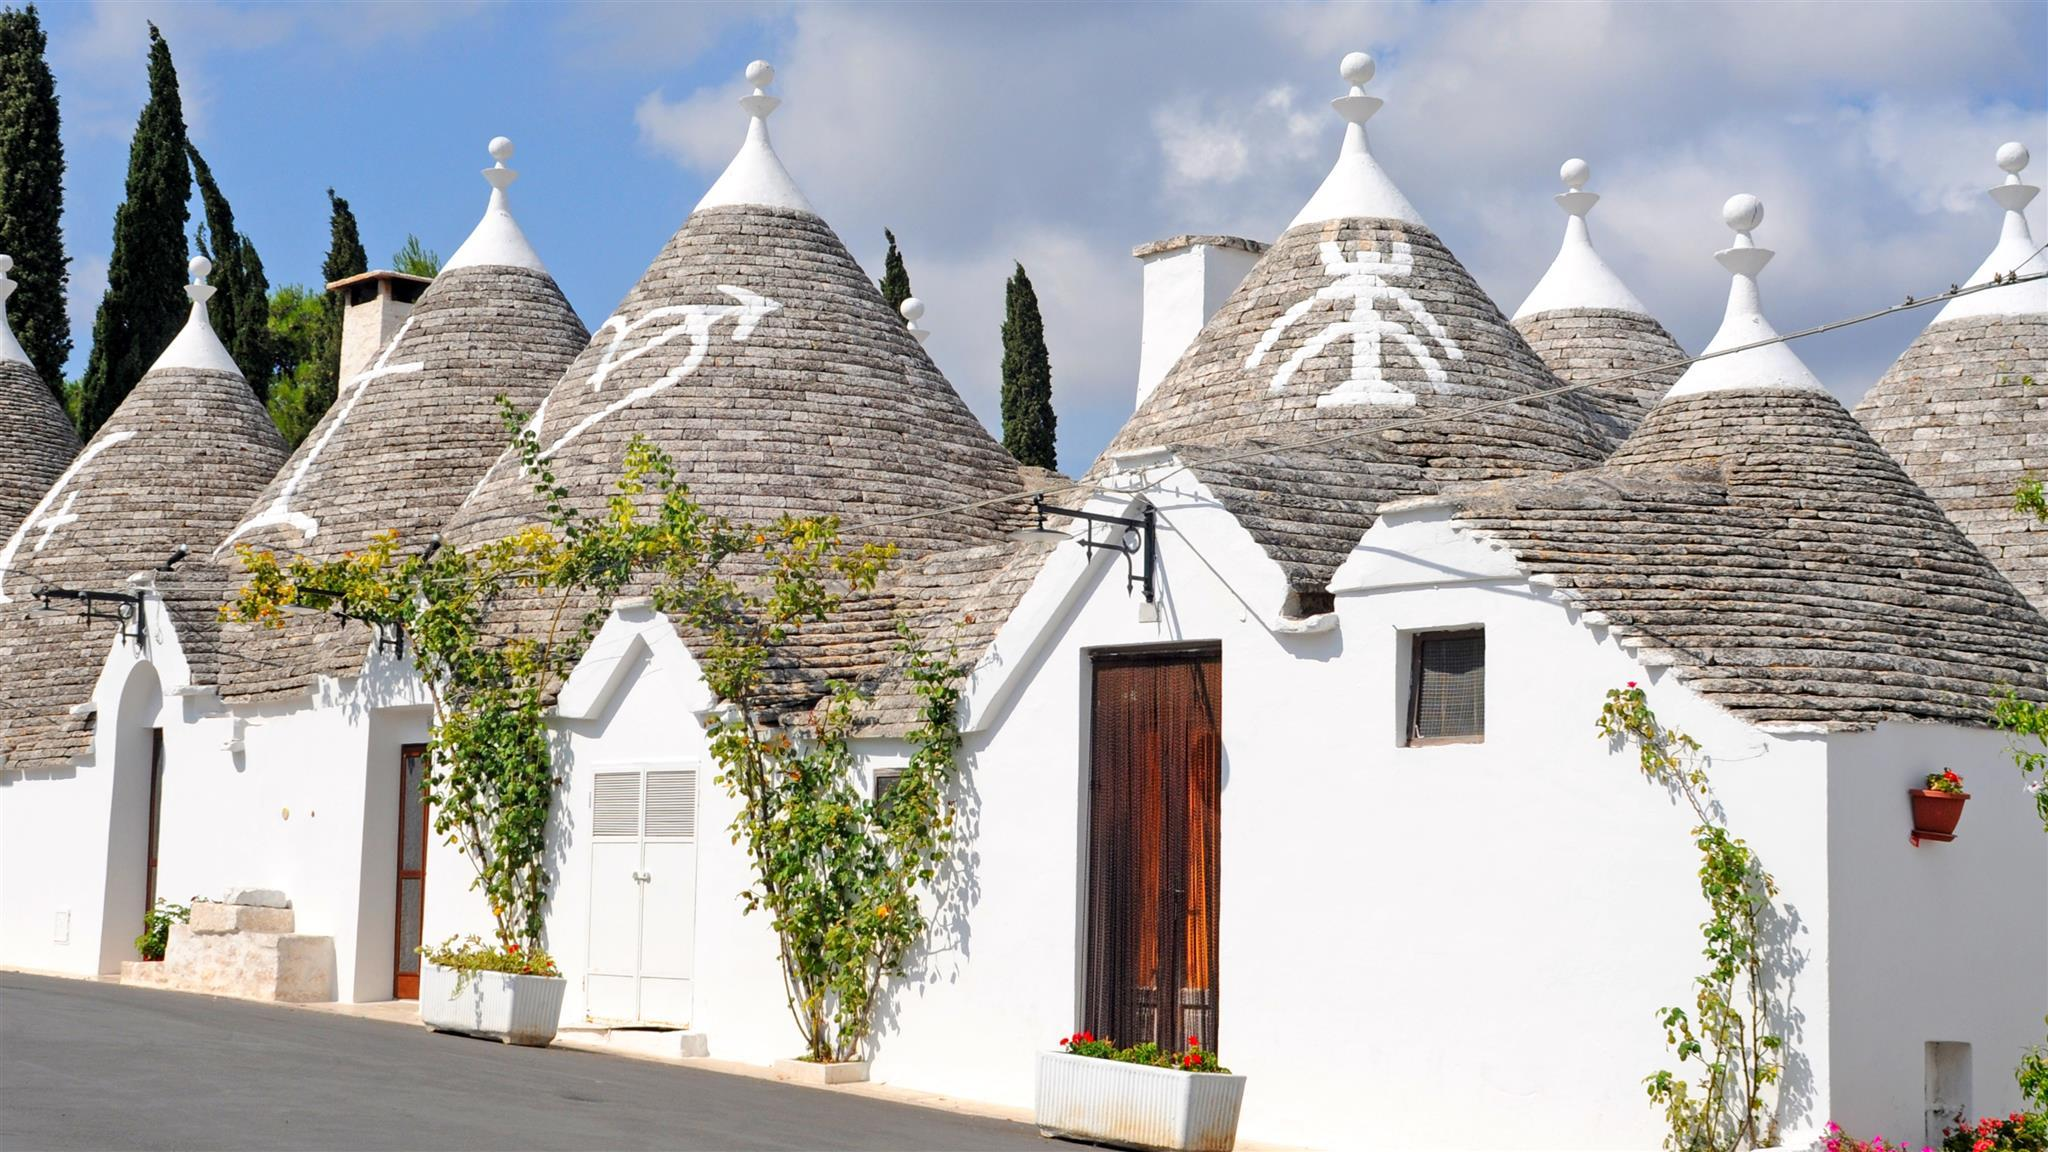 Ristoranti Alberobello 10 Best Alberobello Hotels Hd Photos Reviews Of Hotels In